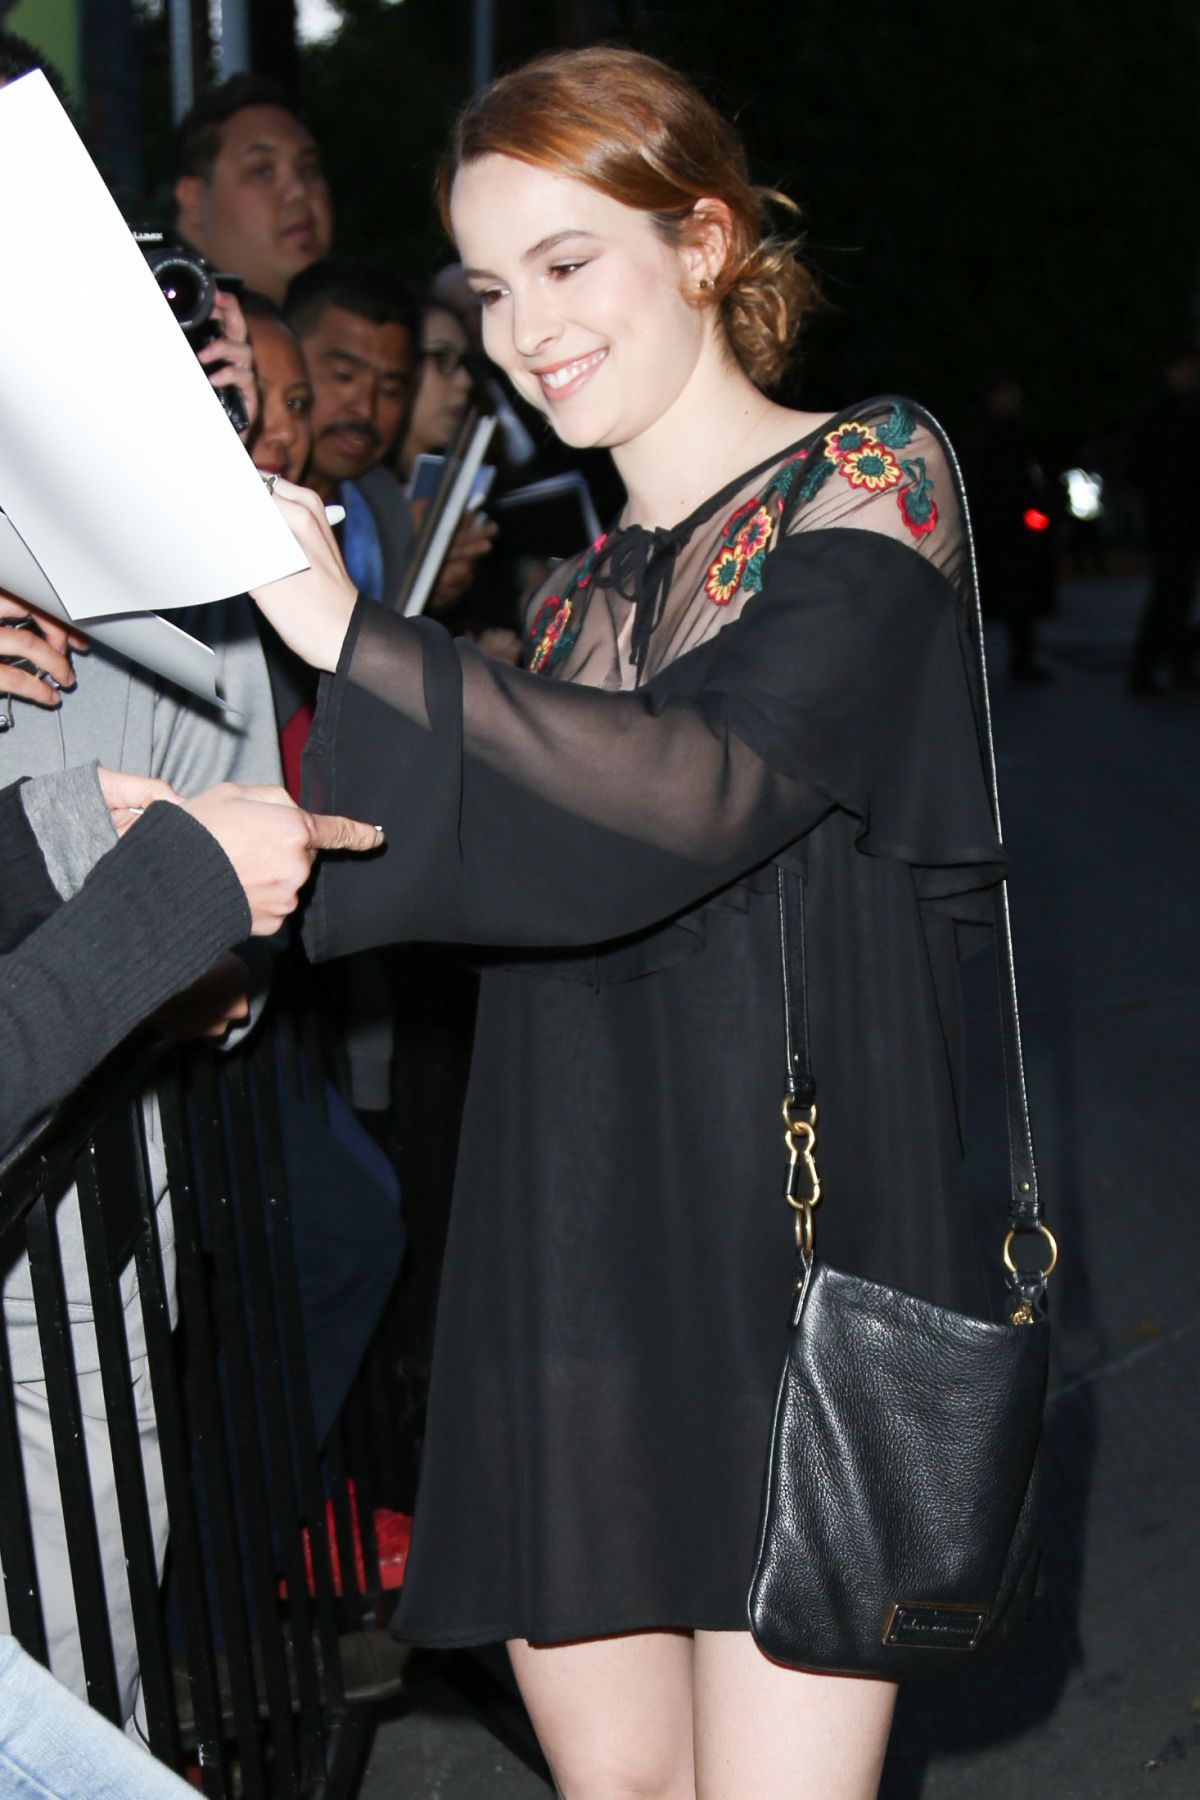 BRIDGIT MENDLER at Chateau Marmont in West Hollywood 04/29/2016